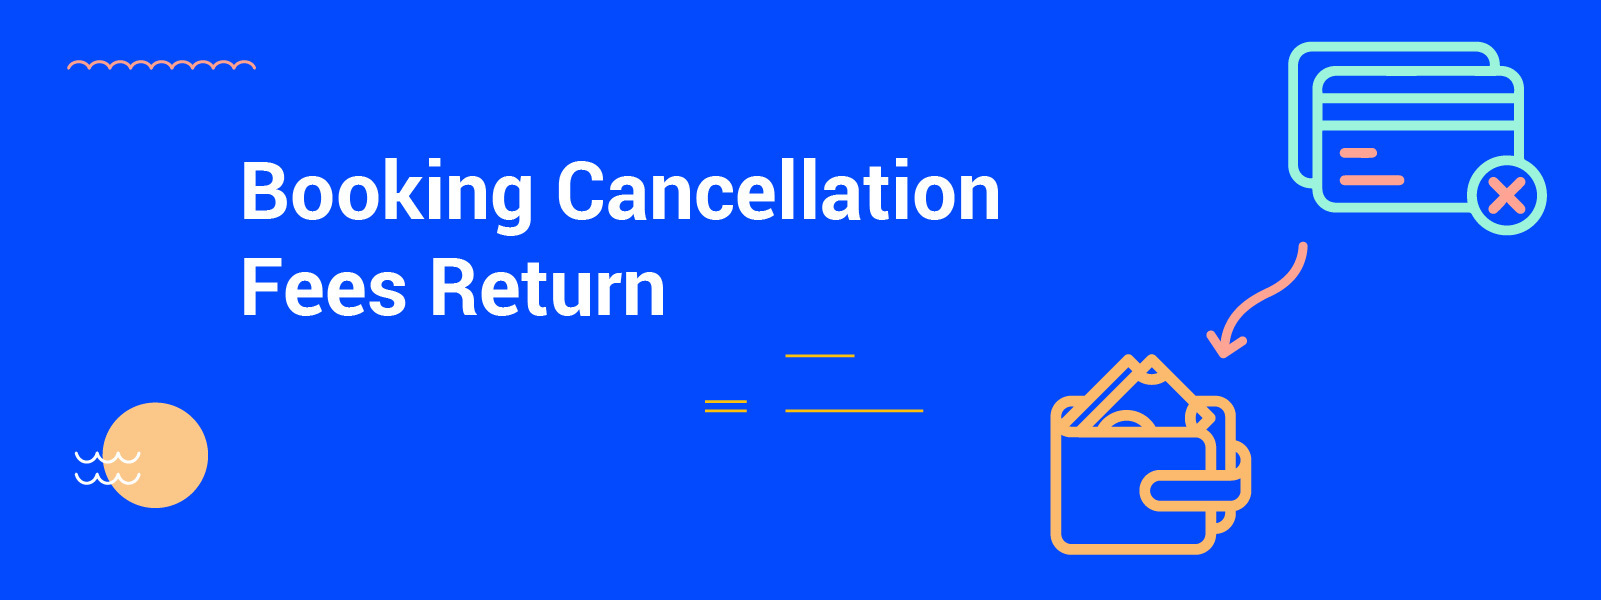 Booking Cancellation/No-Show Fees Return As Covid-19 Bleeds Shipping Lines